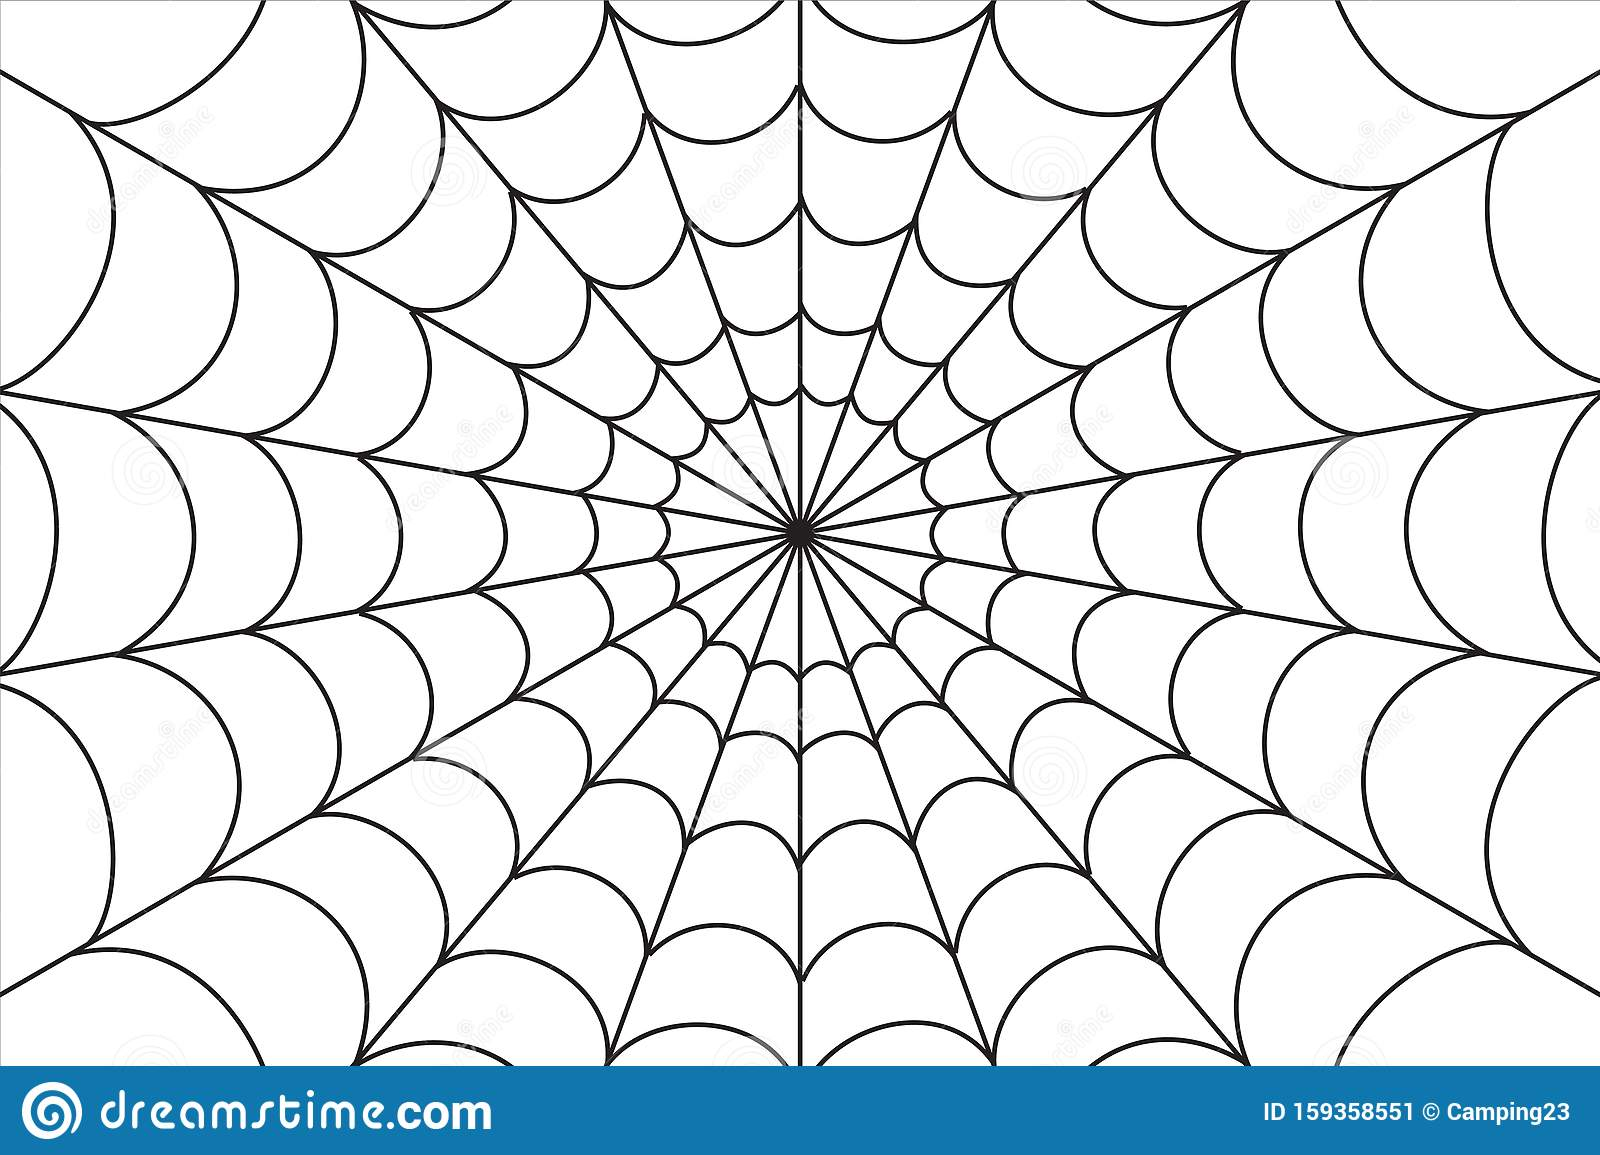 Spider web, illustration